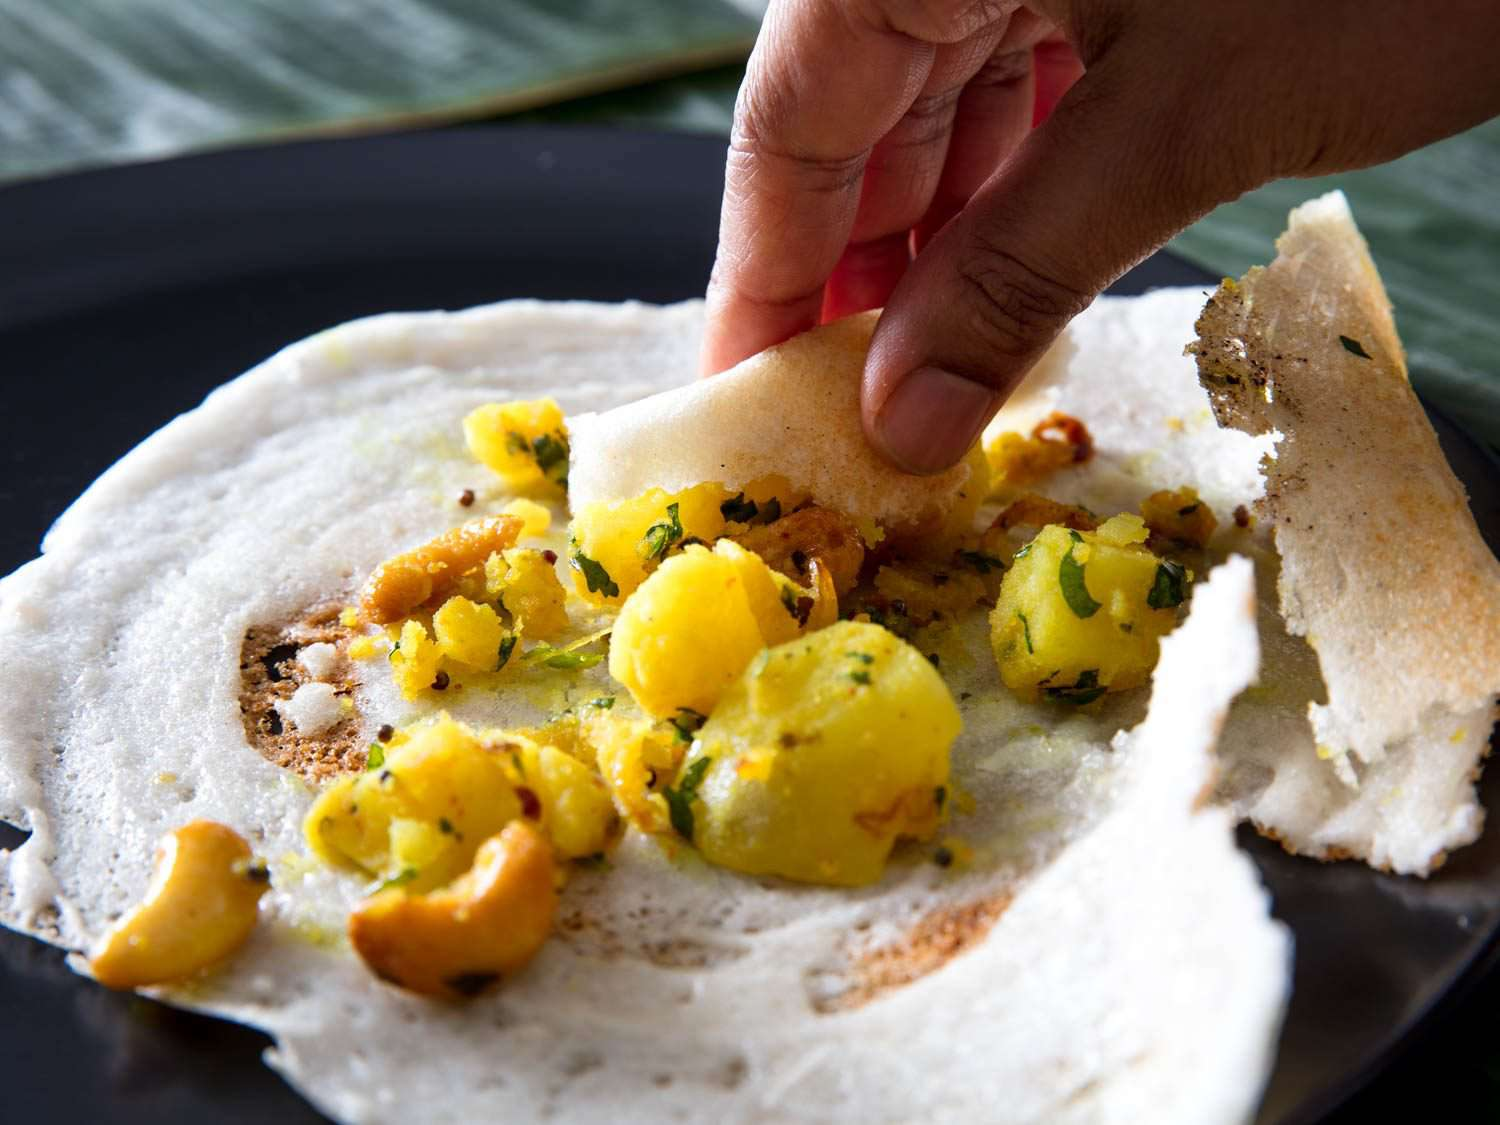 A hand picking up potato filling with a portion of dosa